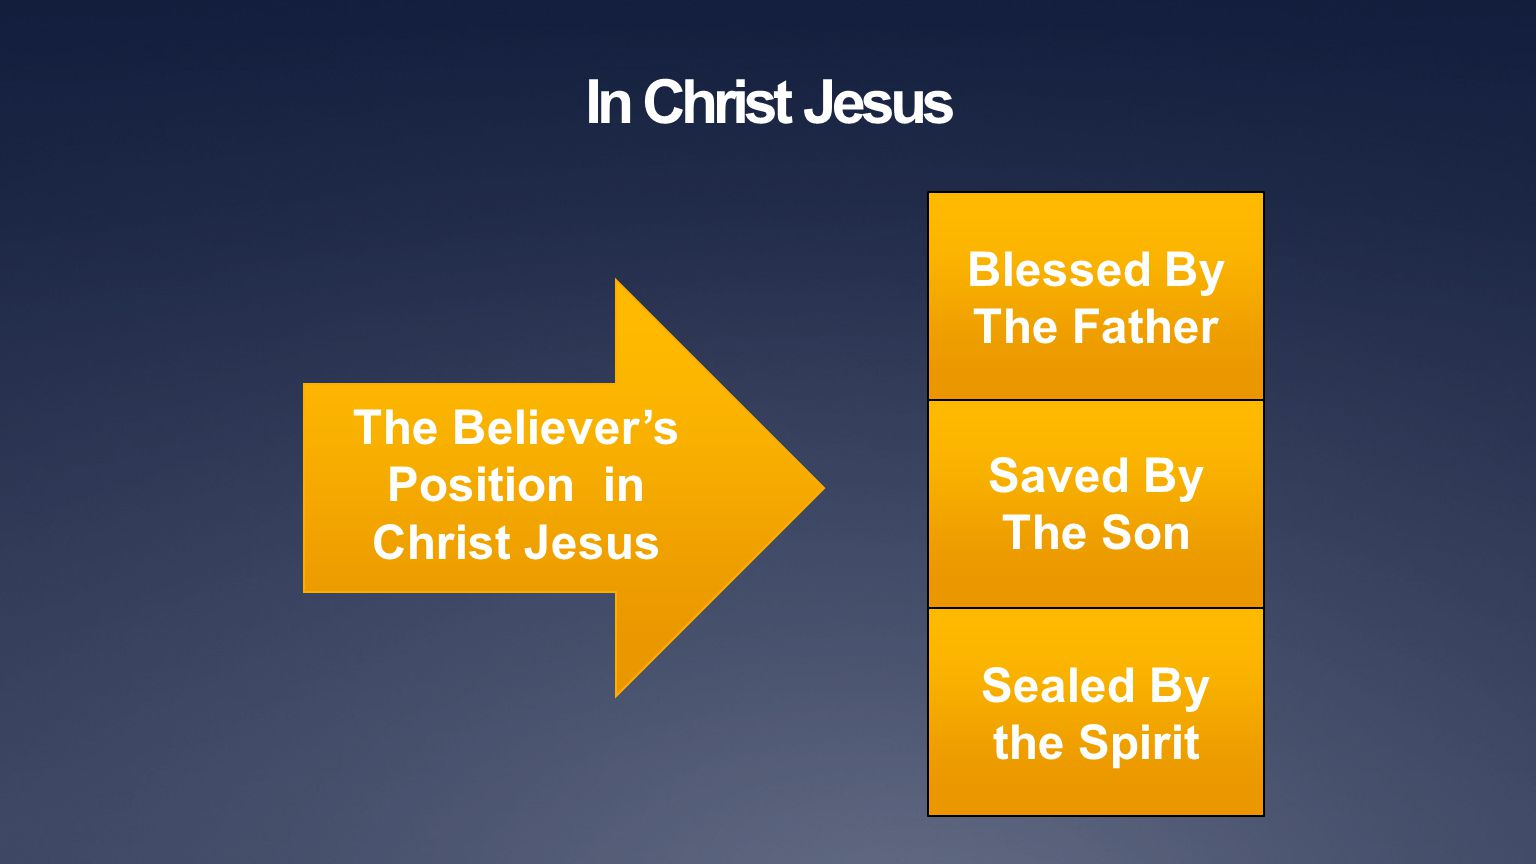 In Christ Jesus The Believer's Position in Christ Jesus Blessed By The Father Saved By The Son Sealed By the Spirit